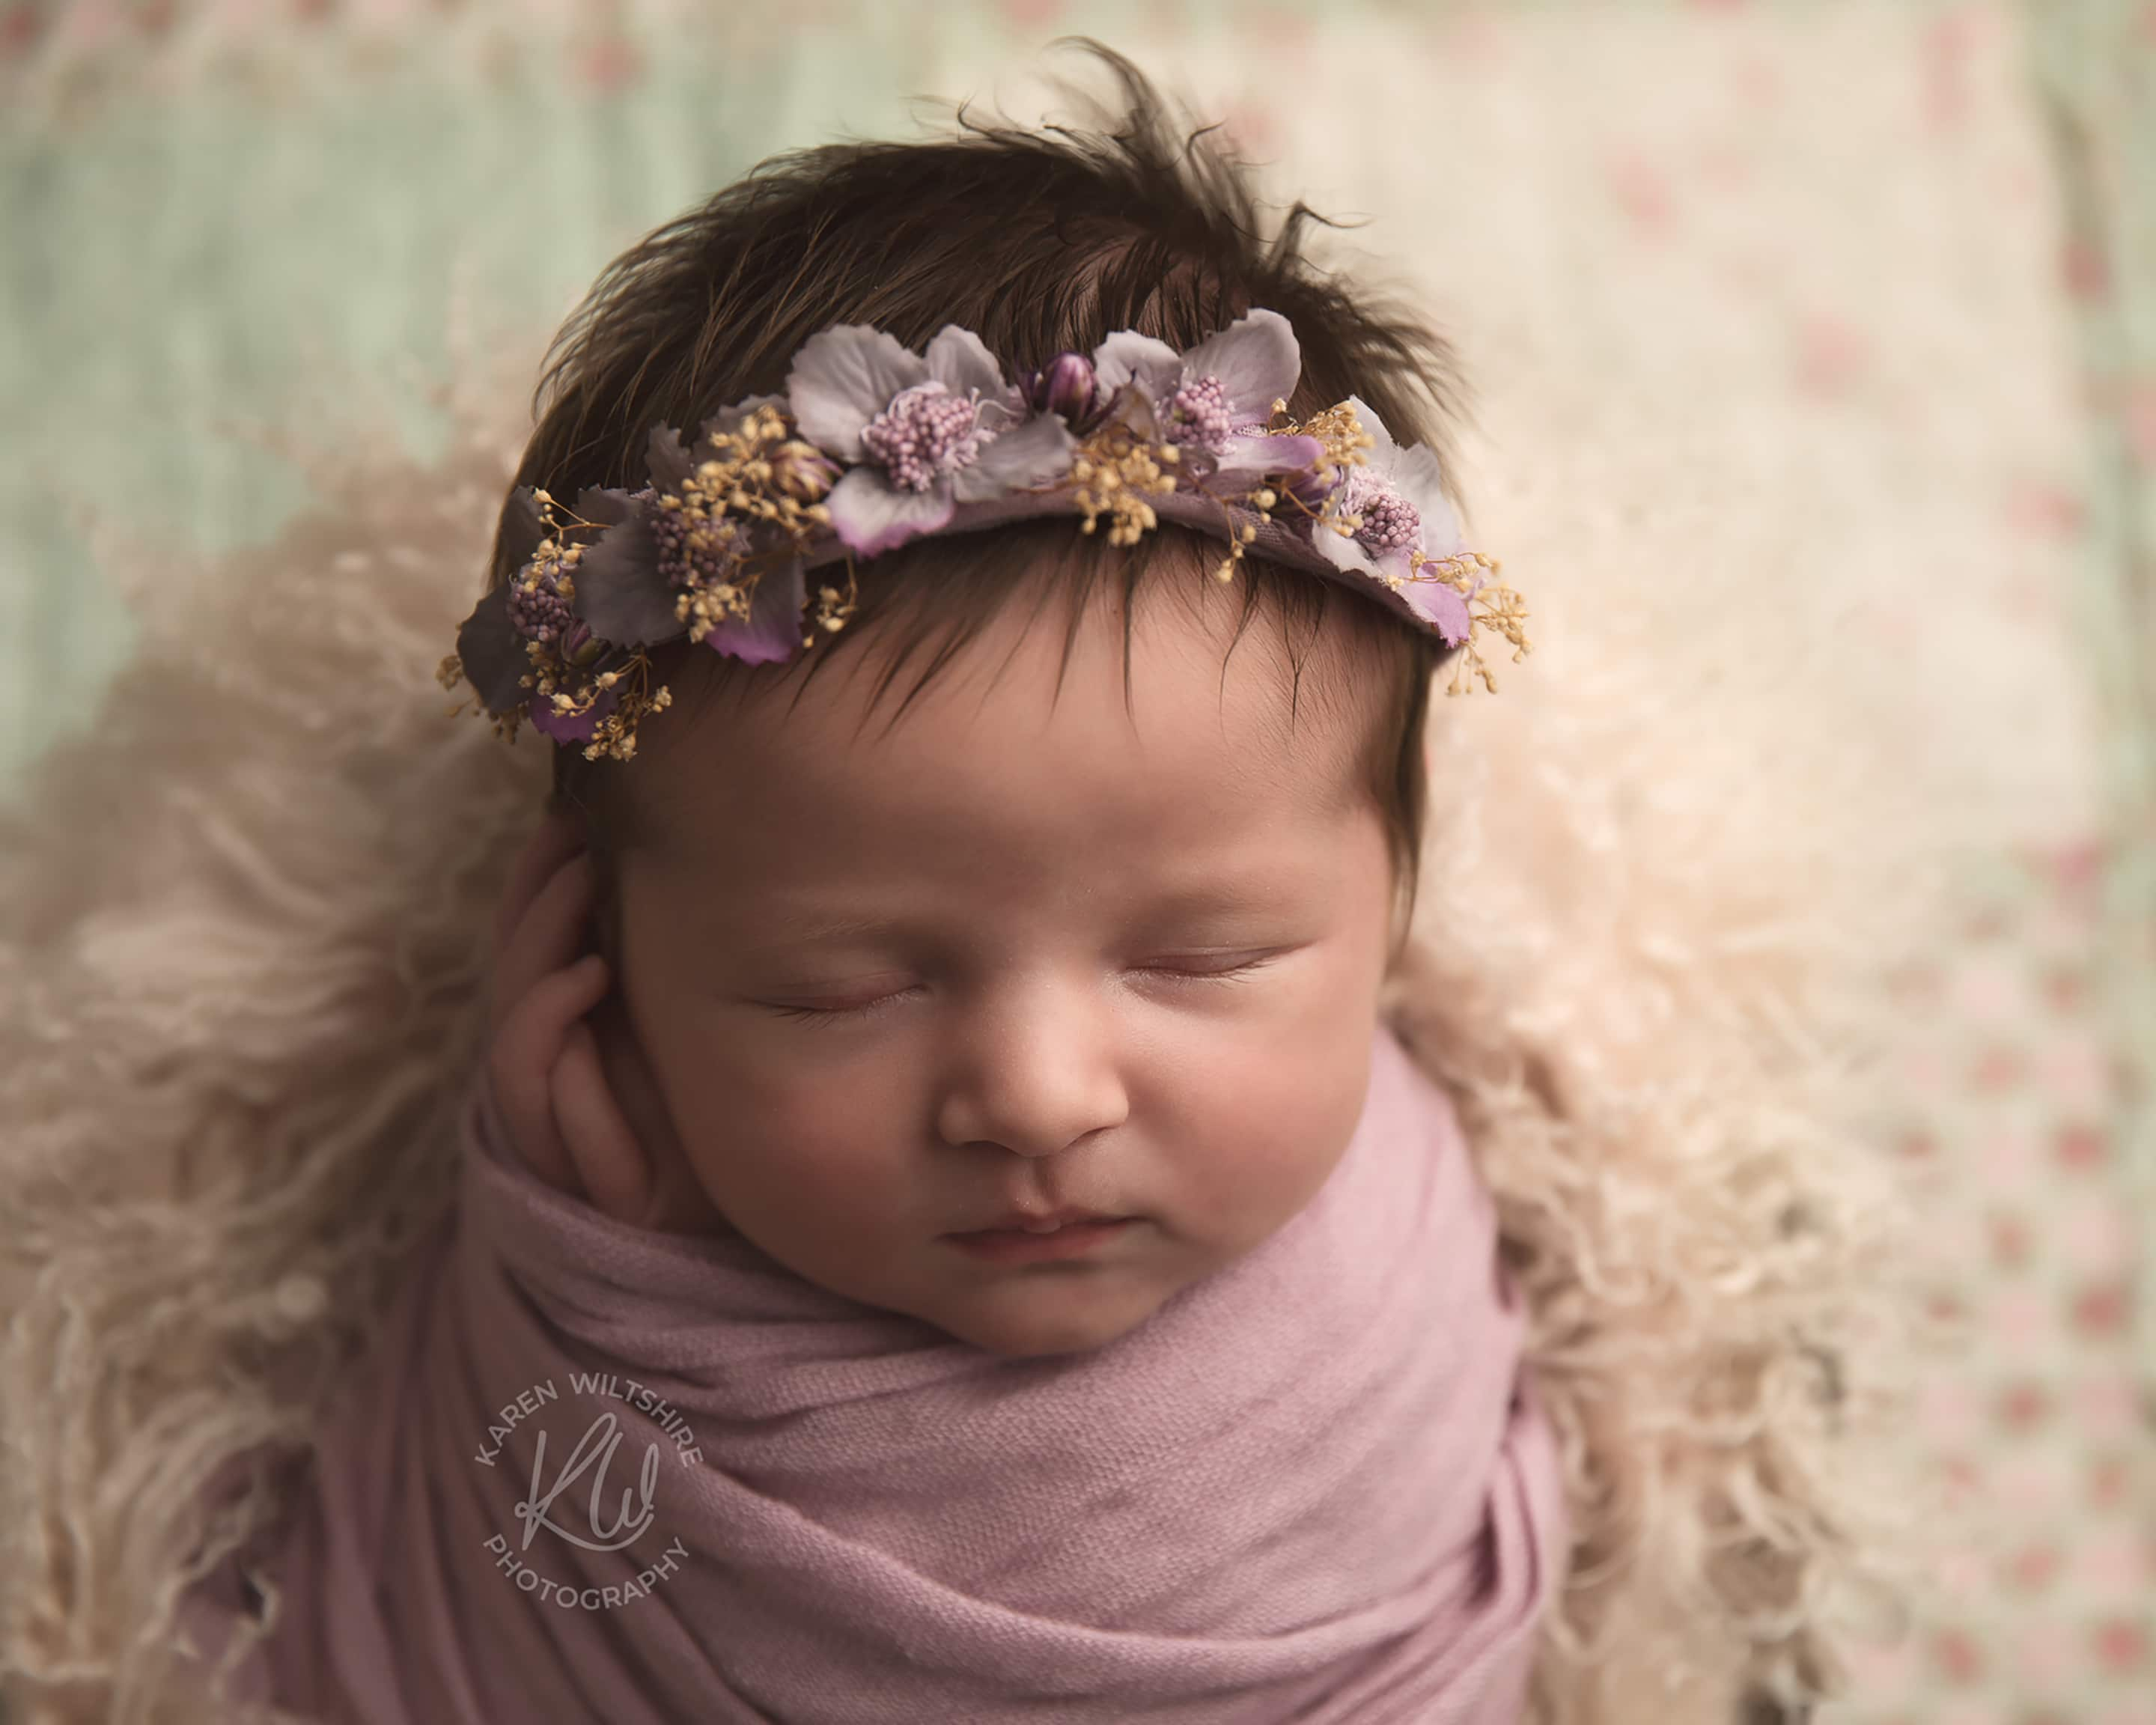 Newborn baby with lots of hair wearing a flower crown